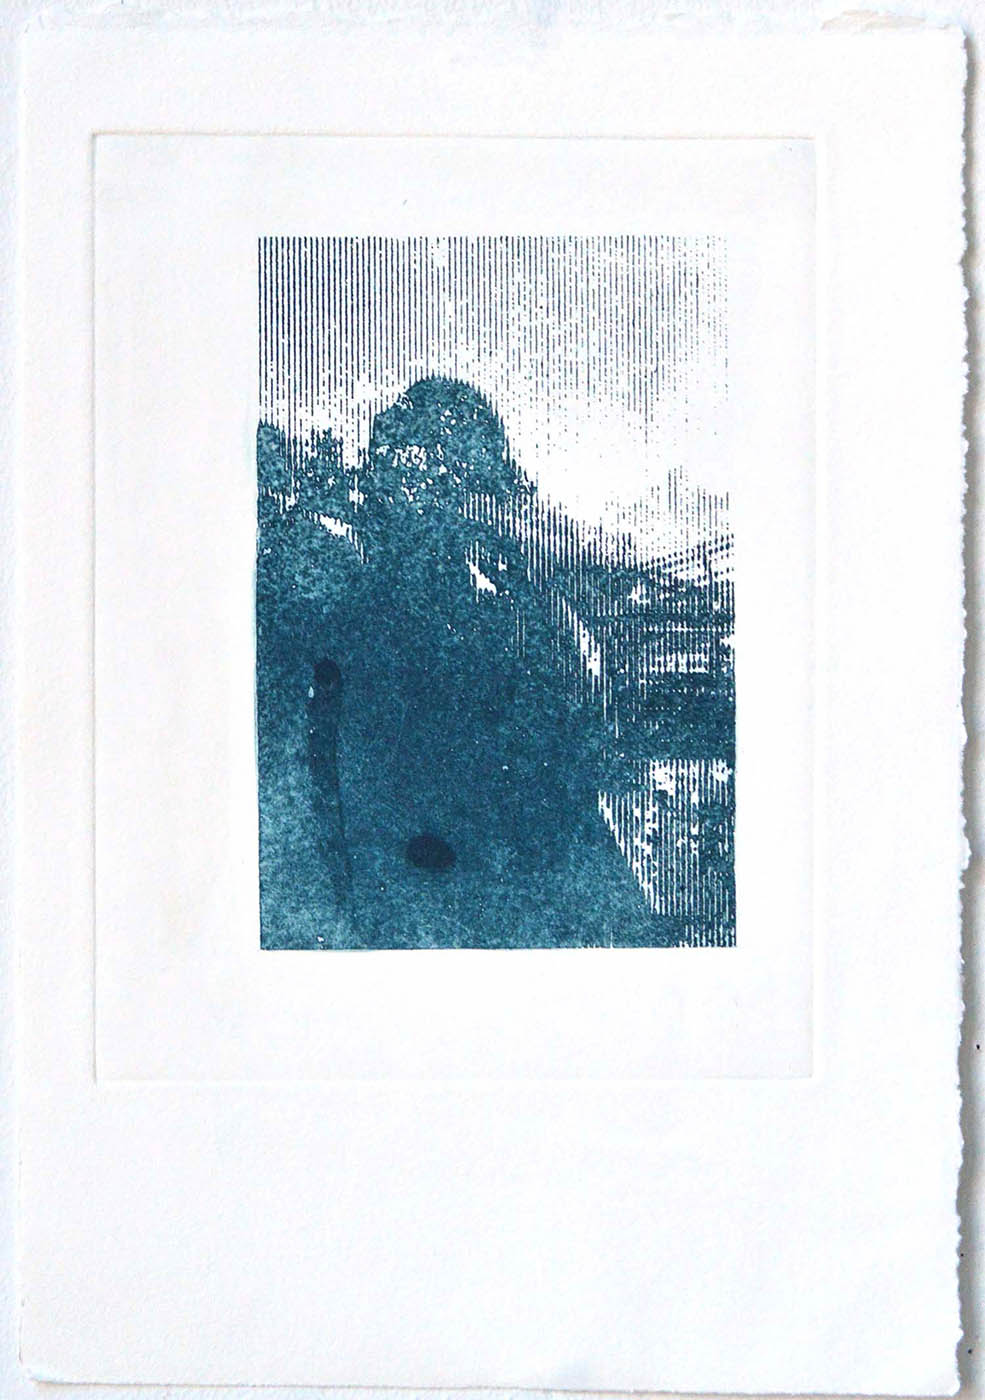 abstract image, printed in blue ink on paper